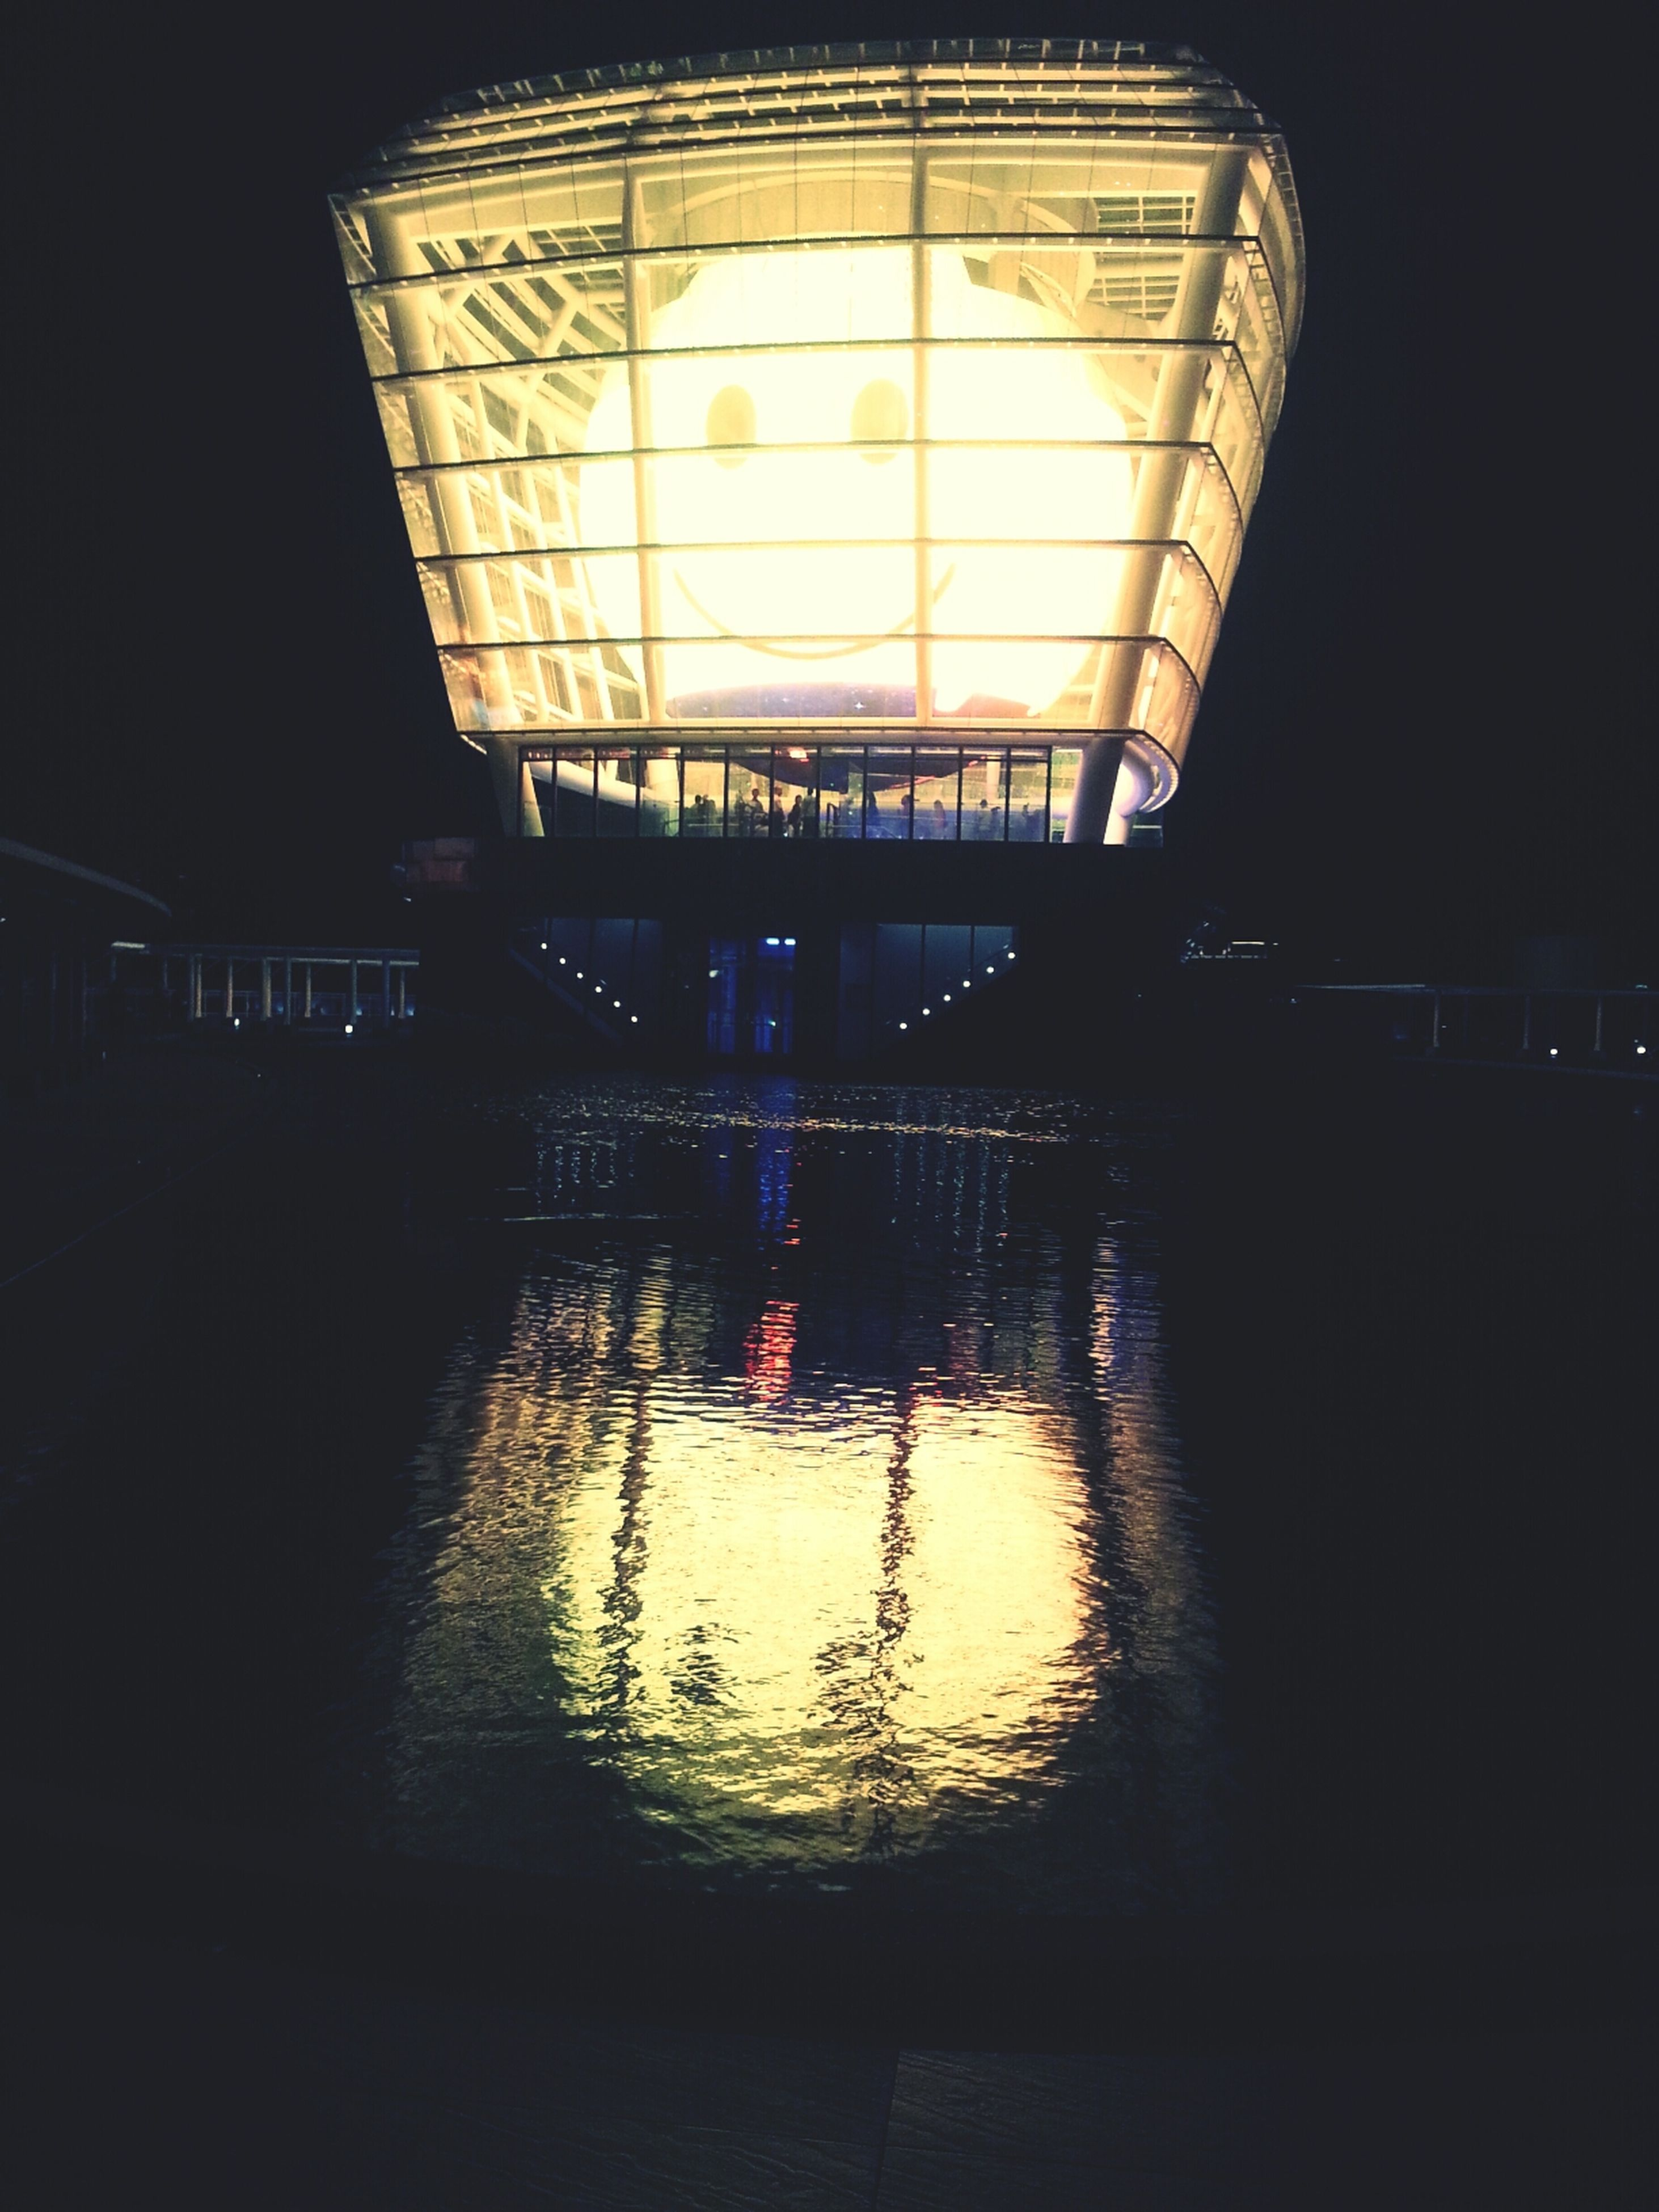 architecture, built structure, reflection, water, indoors, illuminated, night, transportation, building exterior, waterfront, window, silhouette, building, sunset, river, no people, dark, connection, bridge - man made structure, mode of transport